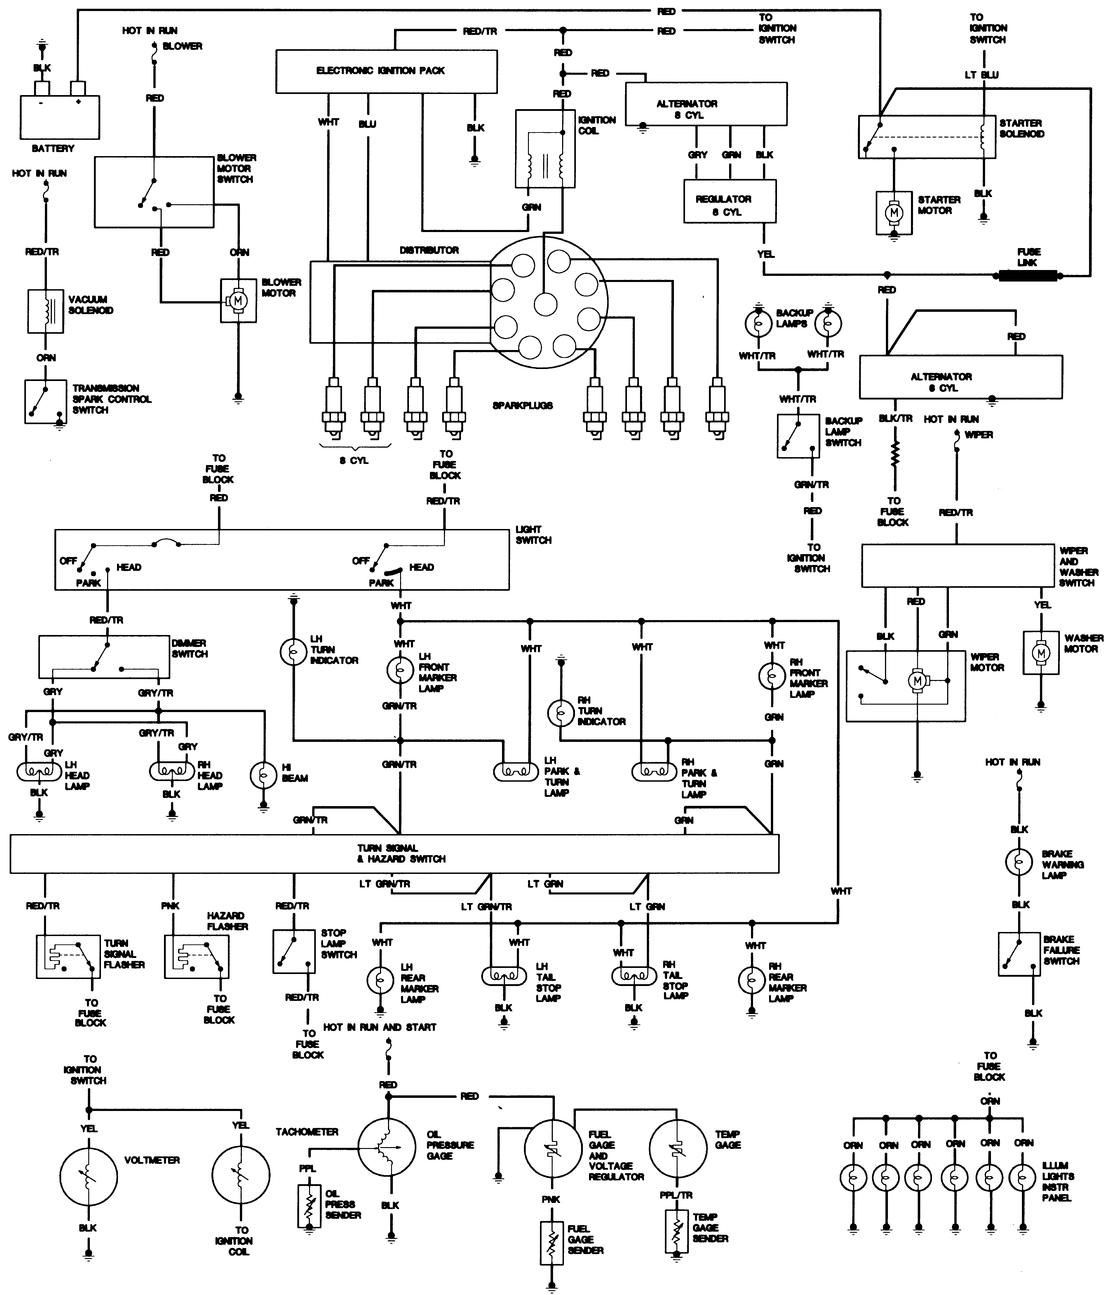 small resolution of jeep cj5 ignition wiring wiring diagram centre 80 jeep cj5 ignition wiring